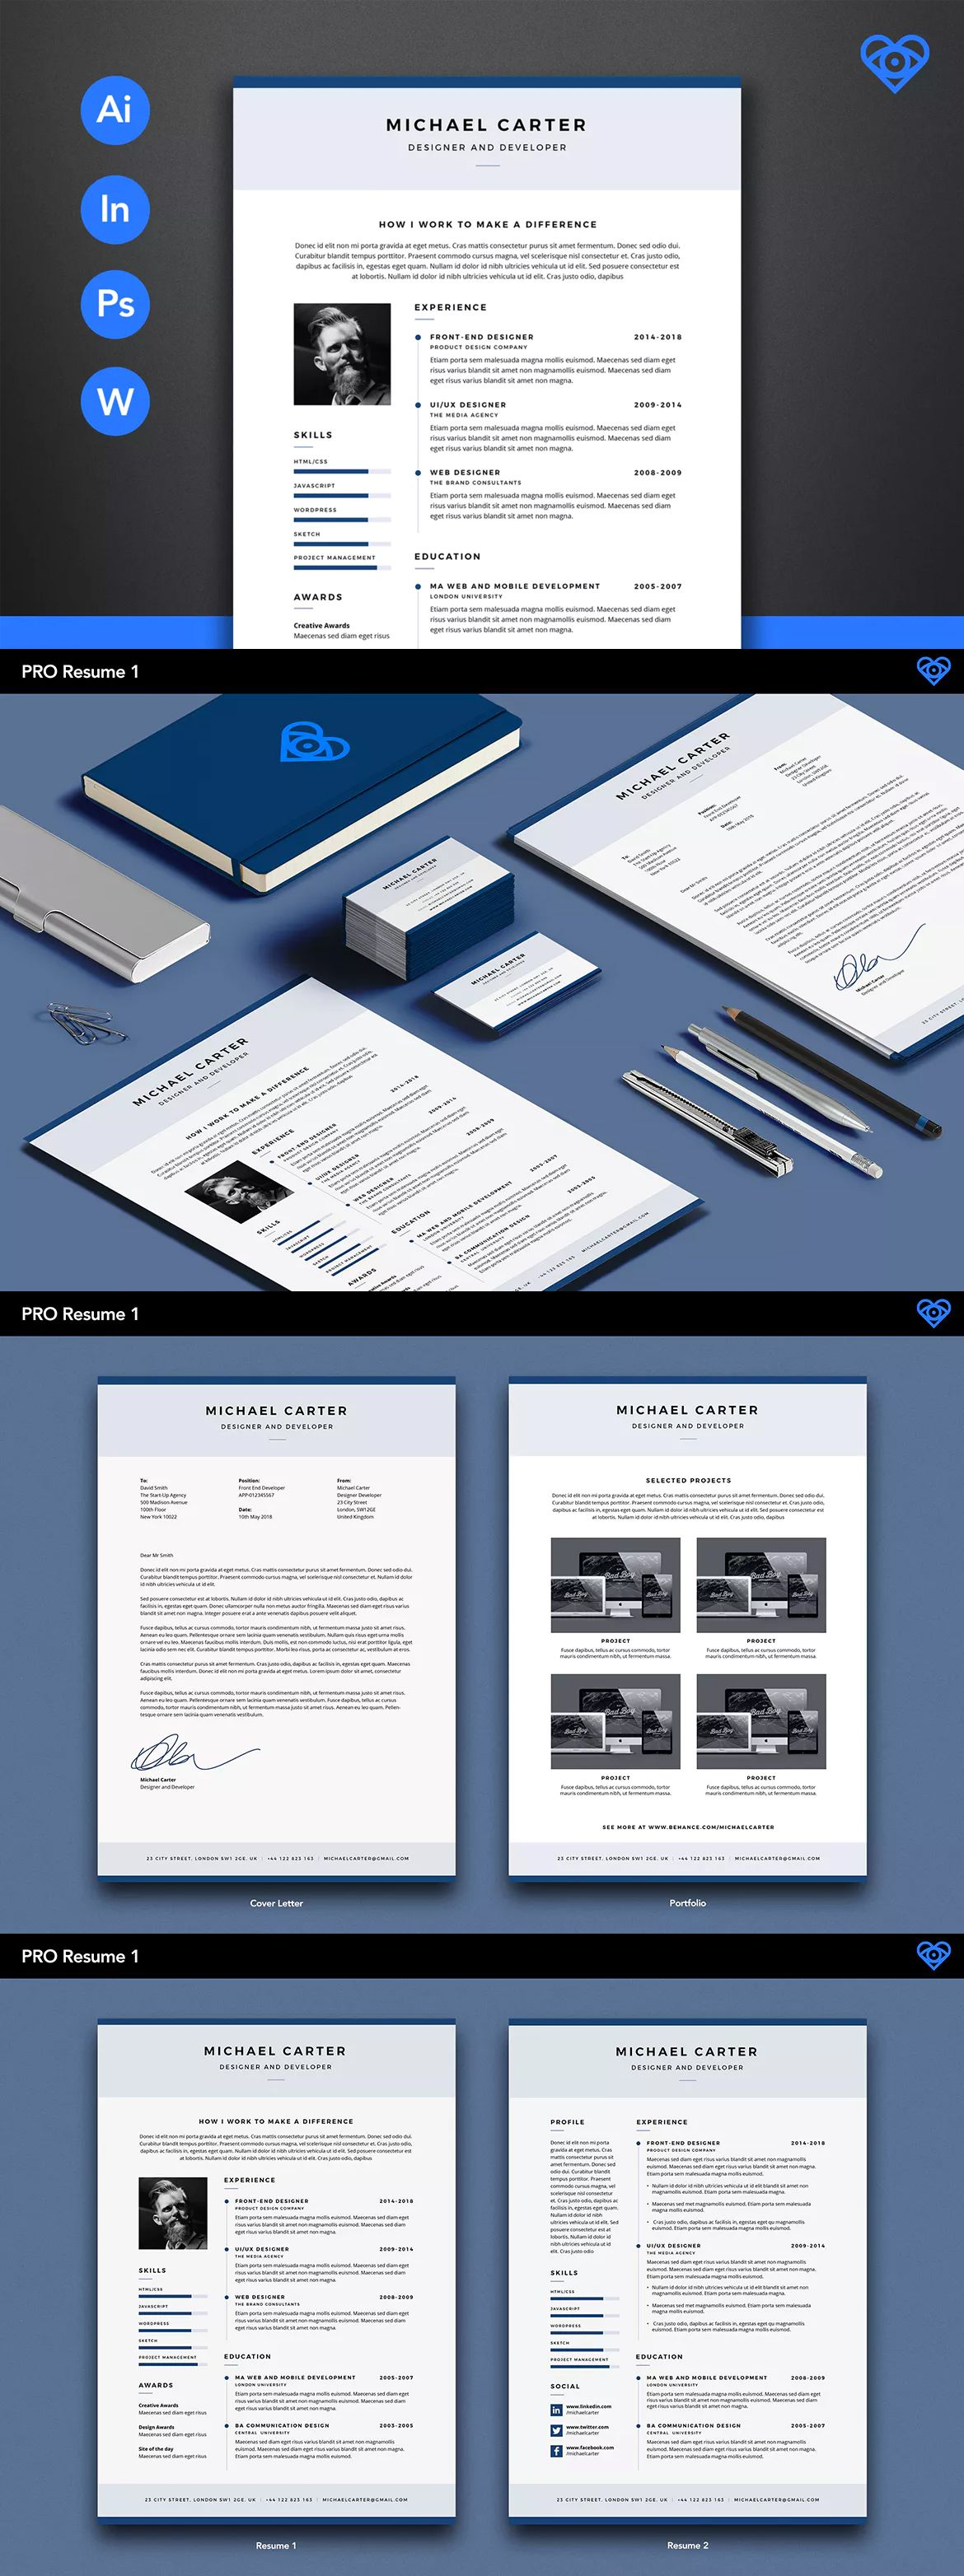 PRO Resume Template AI, INDD, EPS, PSD A4 and Us Letter